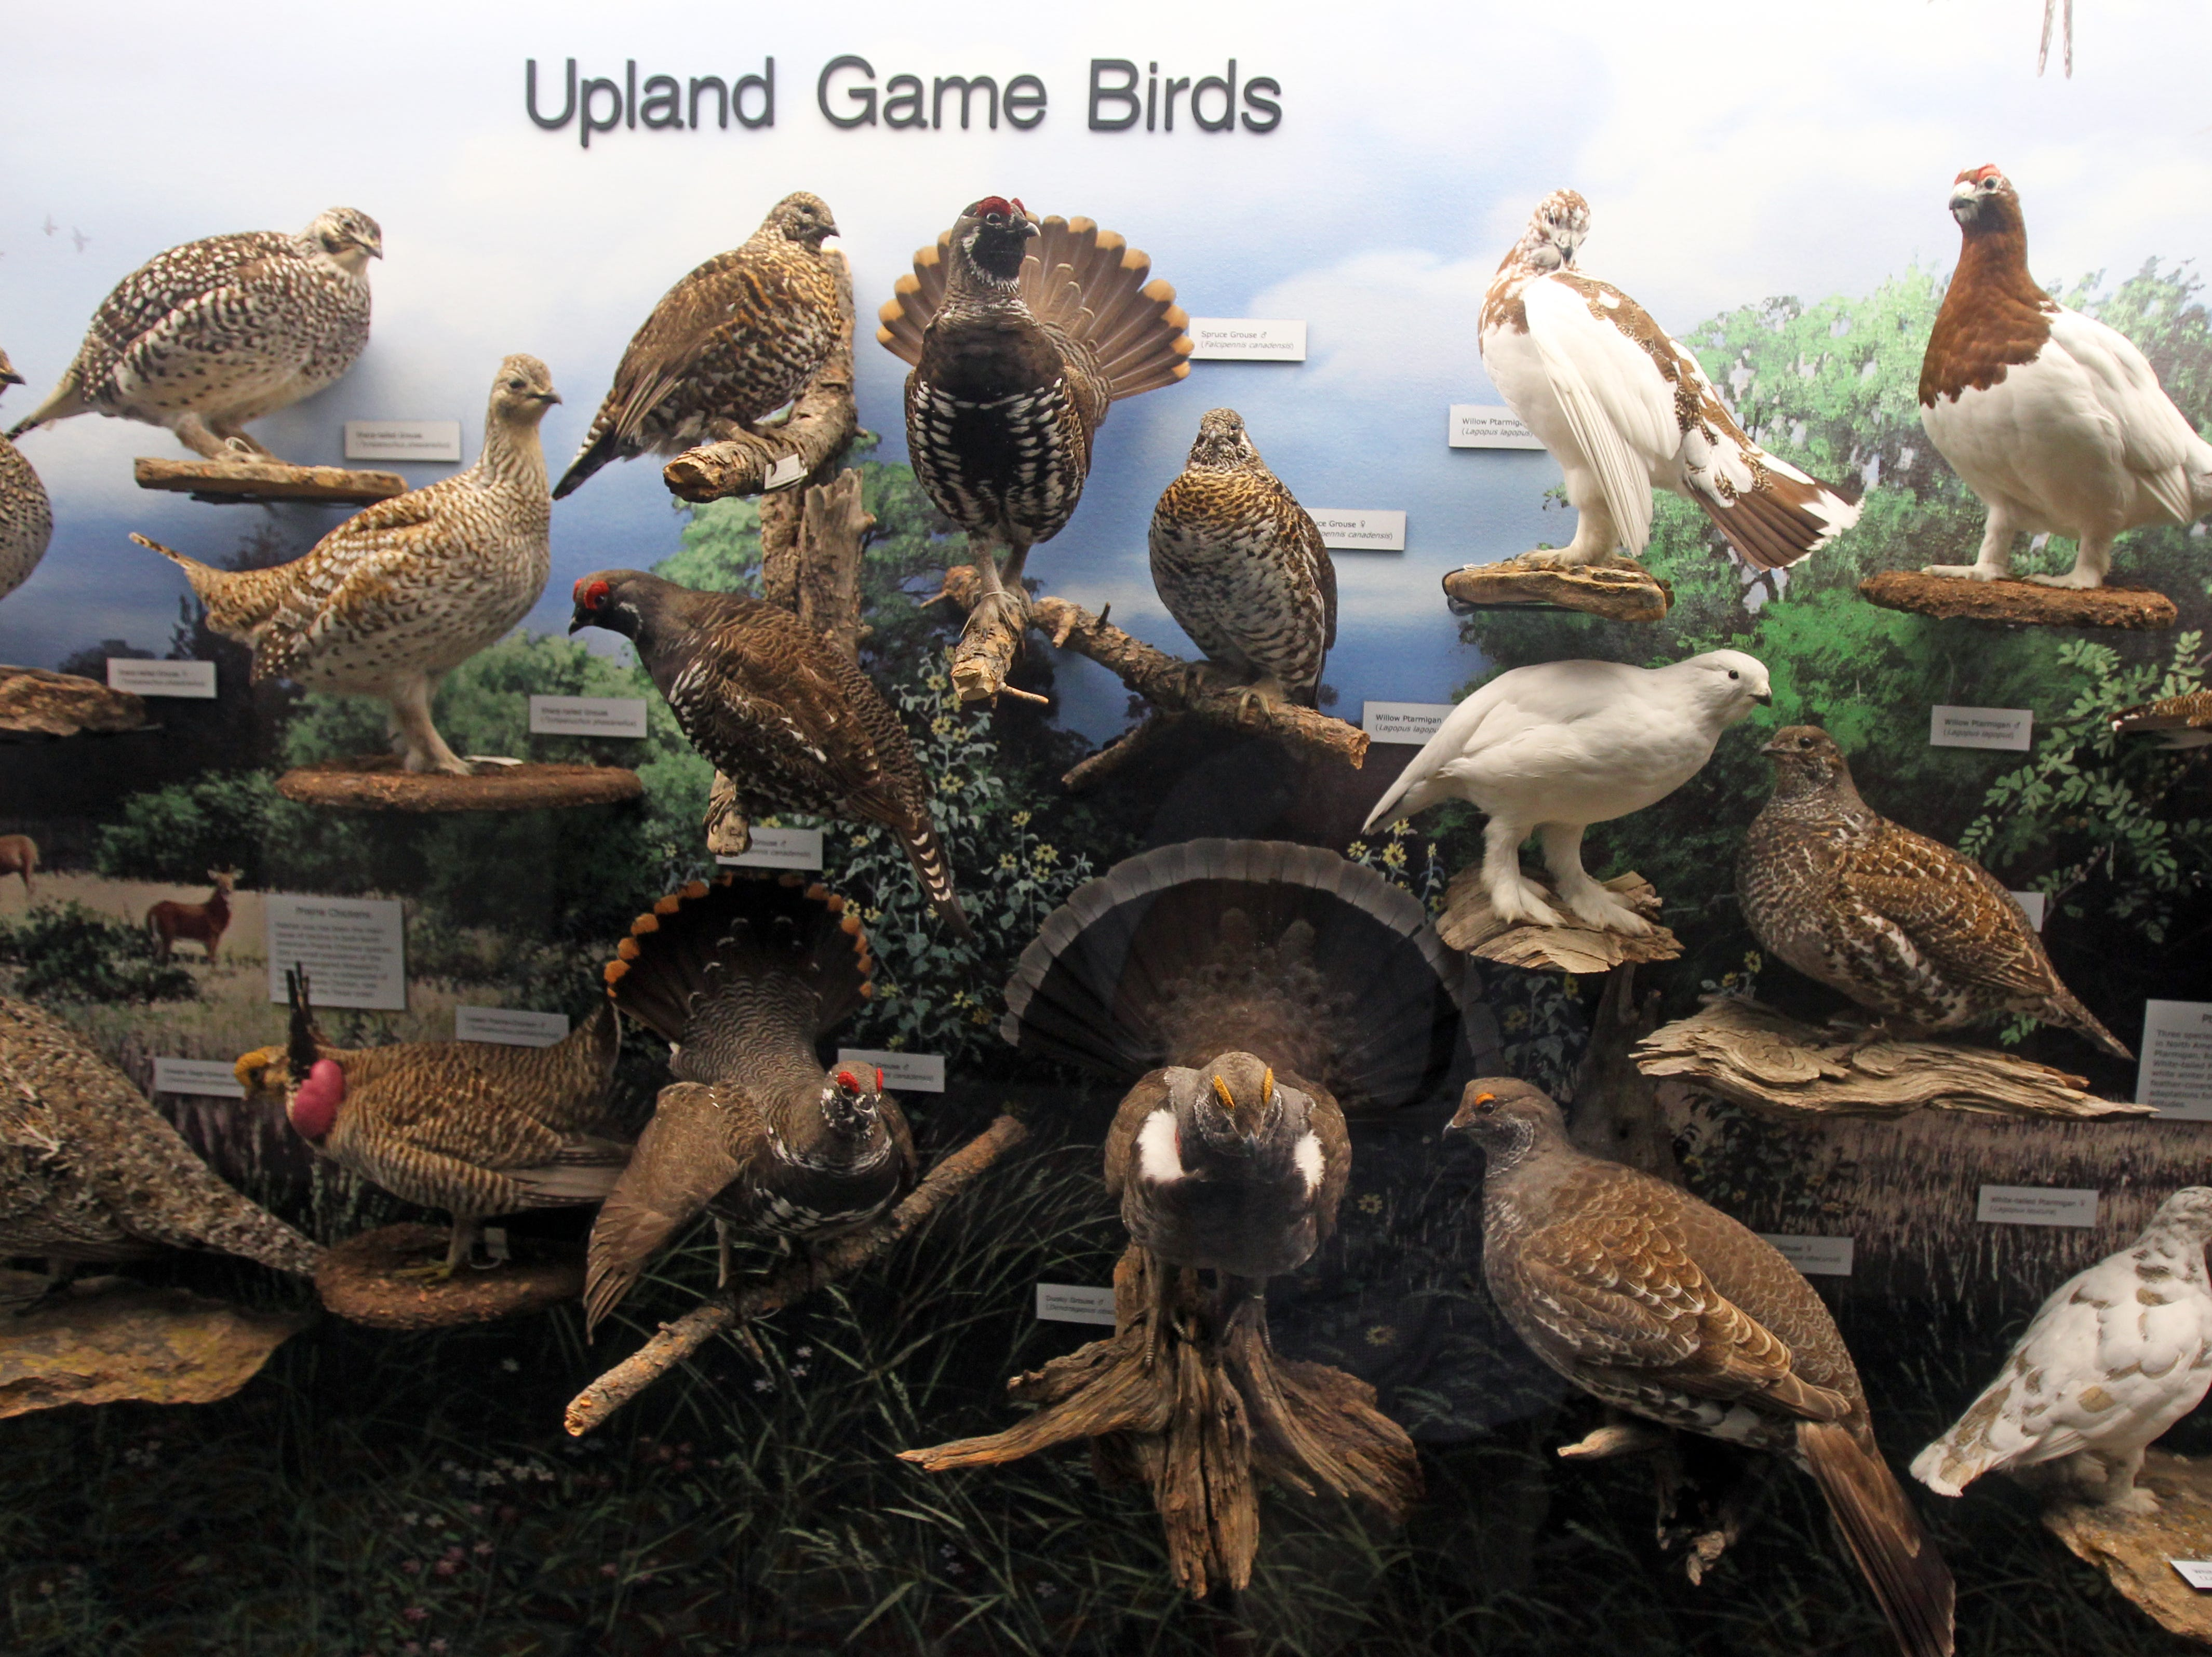 The upland game bird collection is among the larger groups displayed within the Welder exhibit.